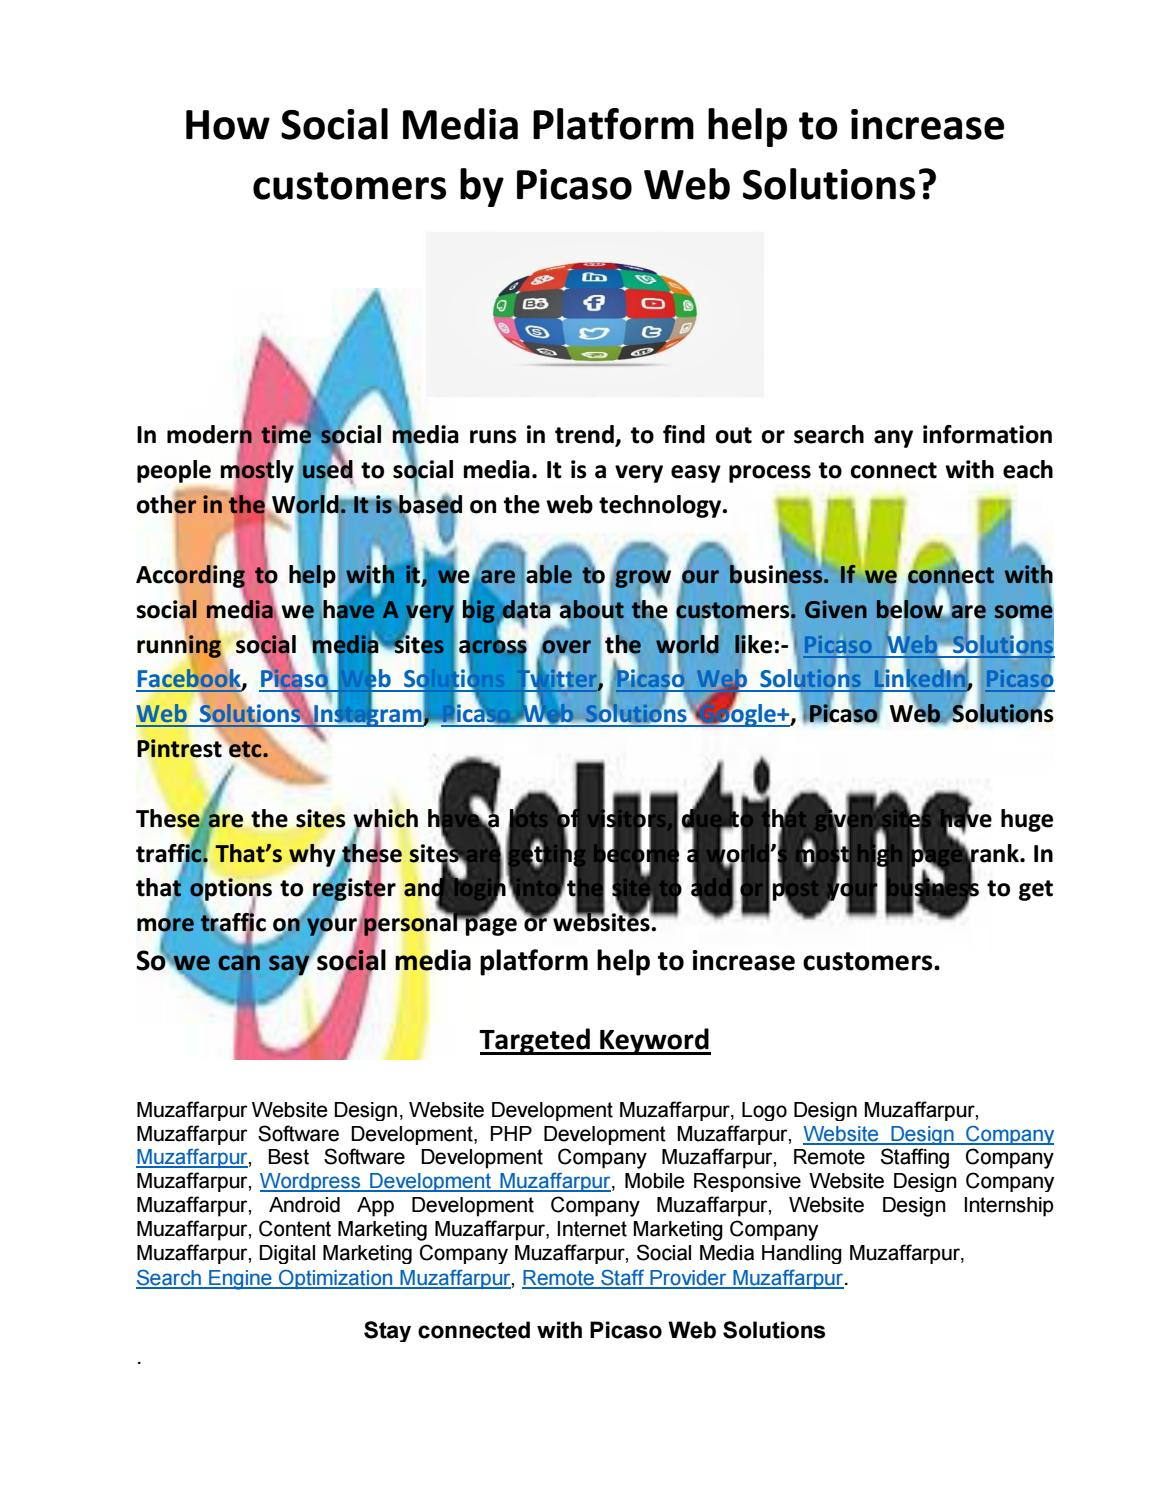 How social media platform help to increase customers by picaso web